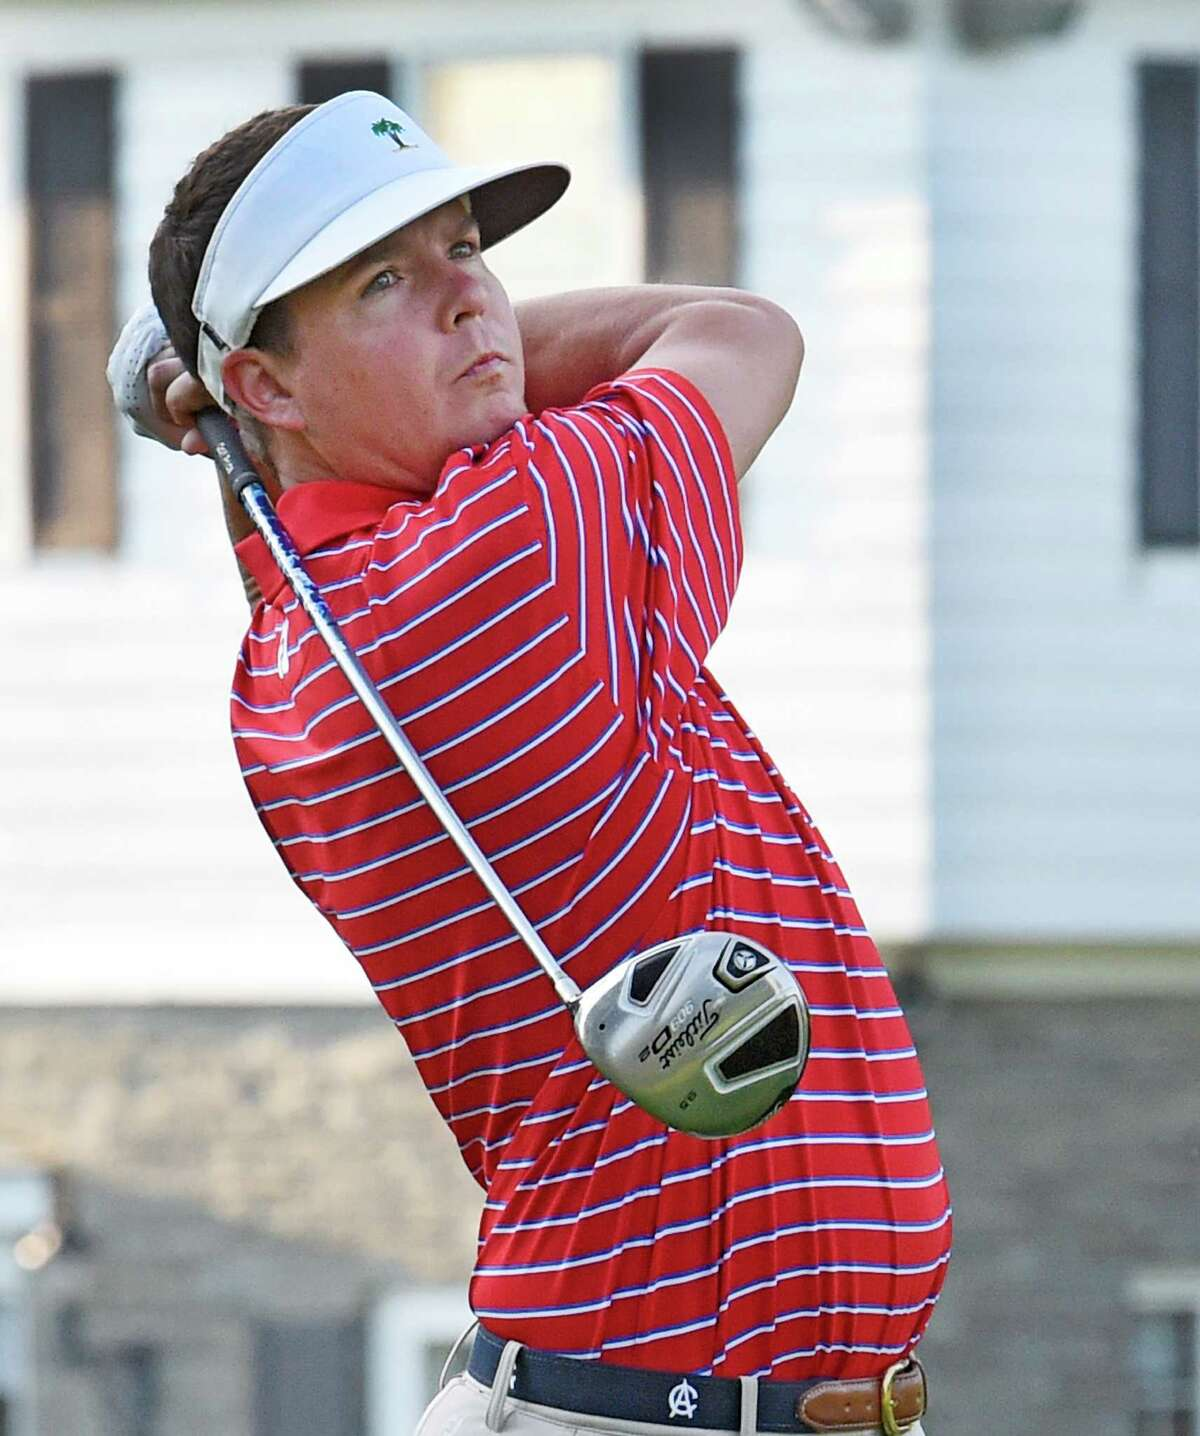 Kevin Pokorski, representing Ausable Club tees off in the Northeastern New York PGA Match Play Championship Wednesday Sept. 16, 2015 at Wolfert's Roost in Albany, N.Y. (Skip Dickstein/Times Union)